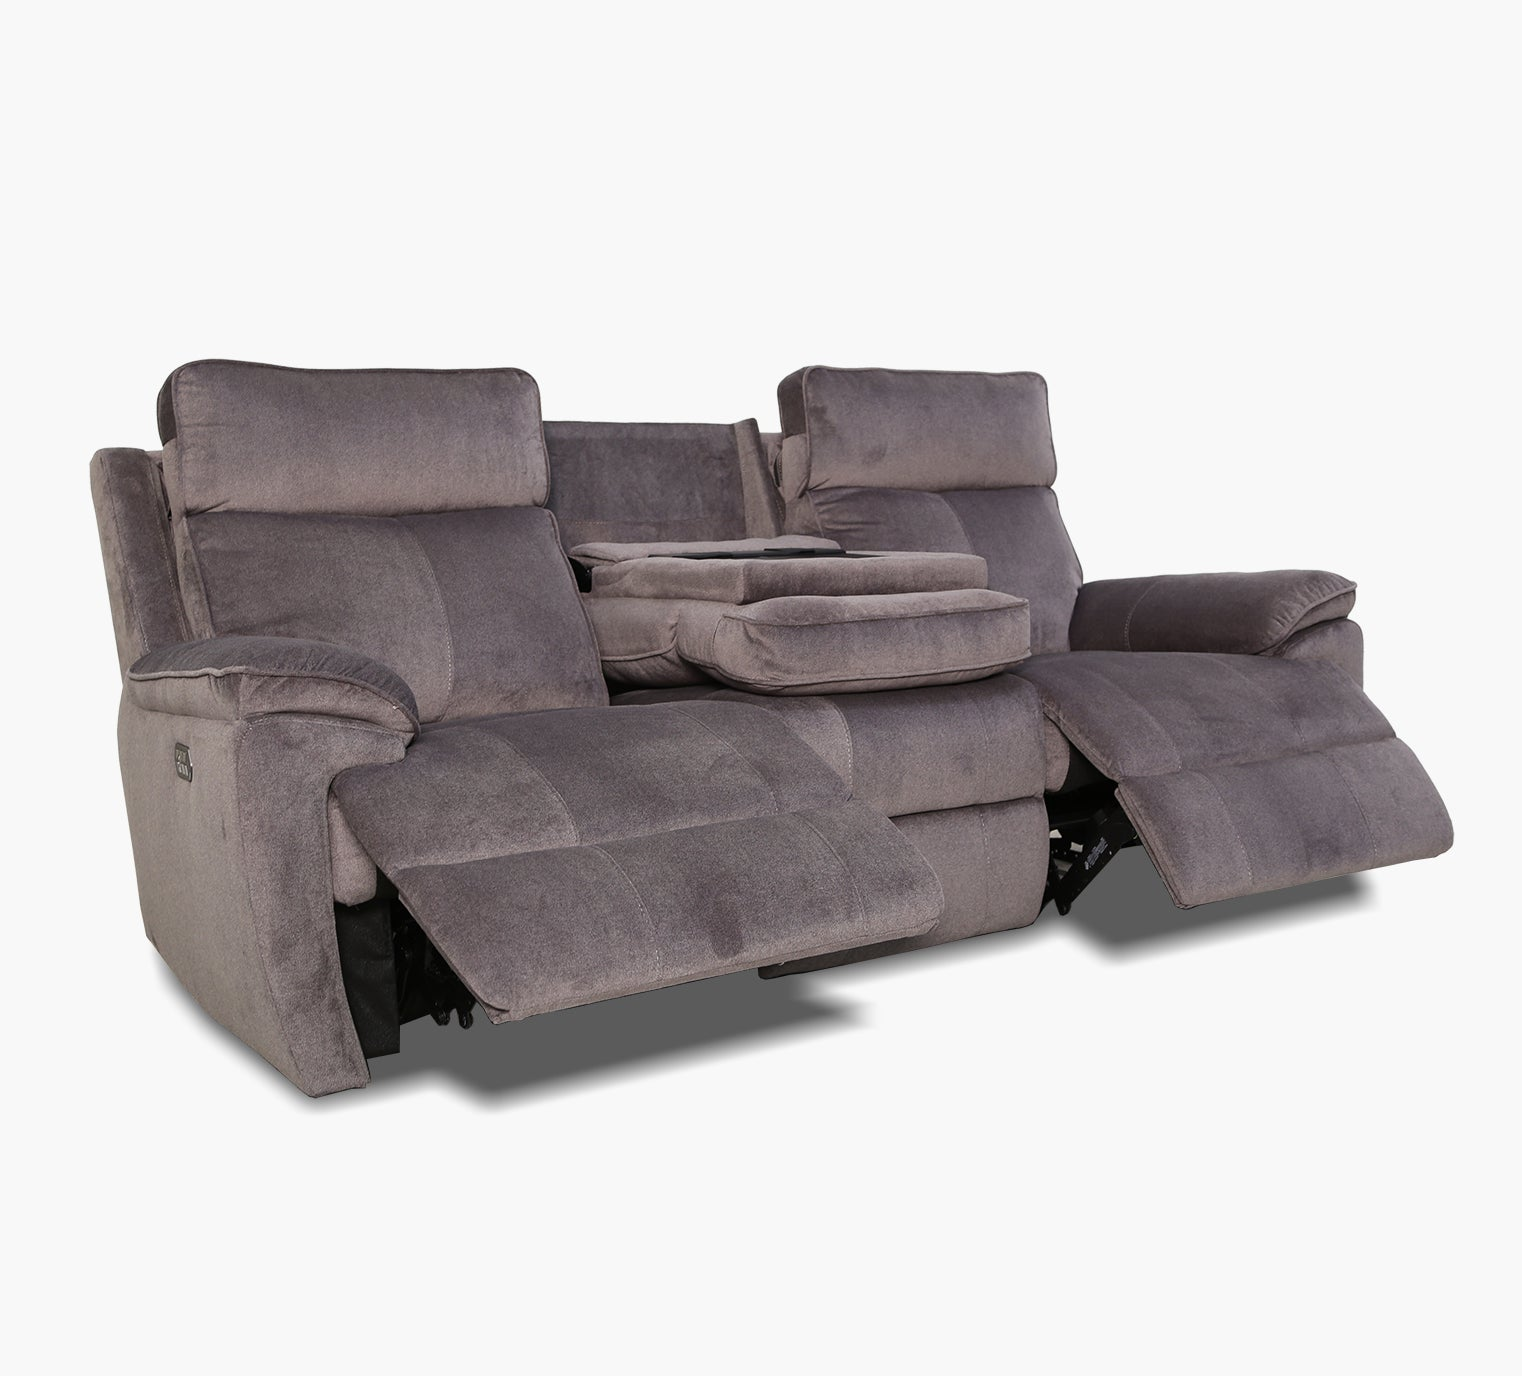 Excellent Berkley Triple Power Reclining Sofa With Itable Kanes Dailytribune Chair Design For Home Dailytribuneorg